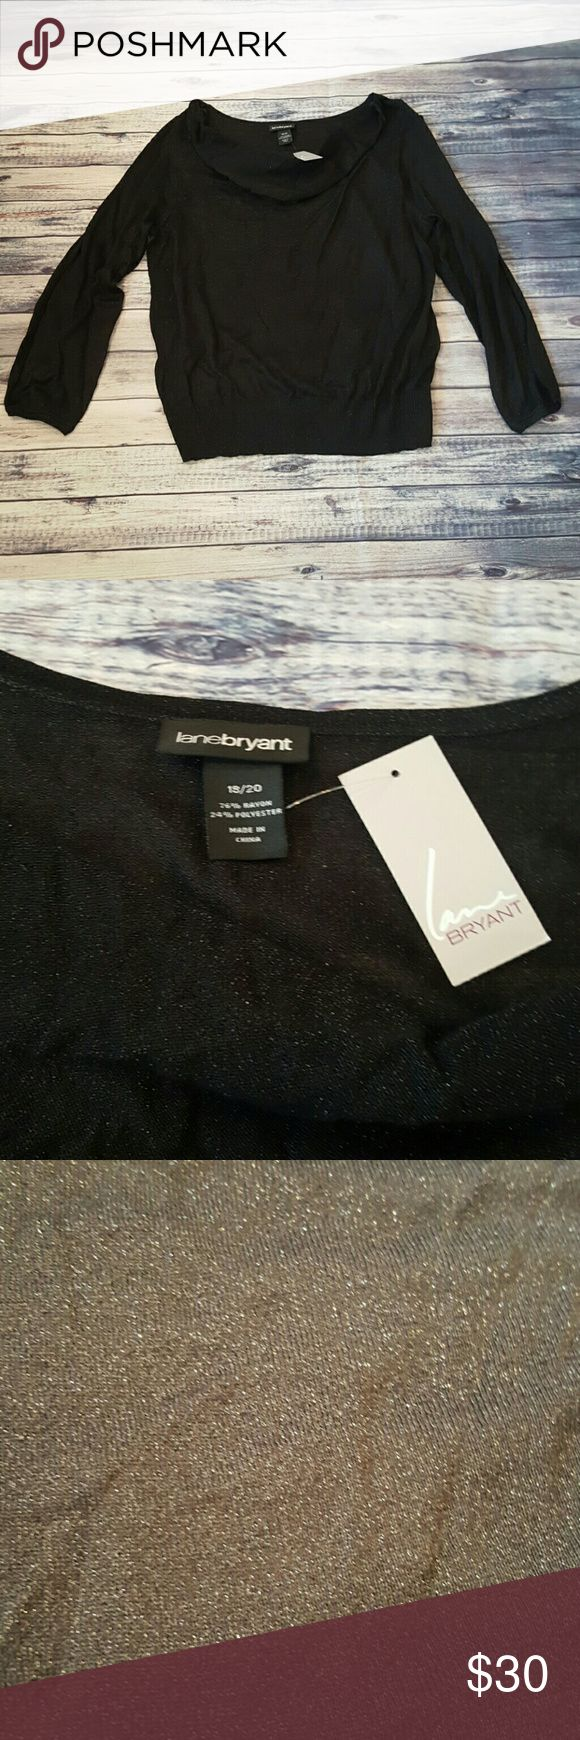 Lane Bryant black  shirt, size 18/20 NWT Lane Bryant black sparkle long sleeve blouse size 18/20 NWT.  The shirt is 76% rayon and 24% polyester.   All my stuff comes from a smoke free and pet free home.  I encourage you to bundle to save on shipping, so check out my closet for other deals! 312 Lane Bryant Tops Blouses